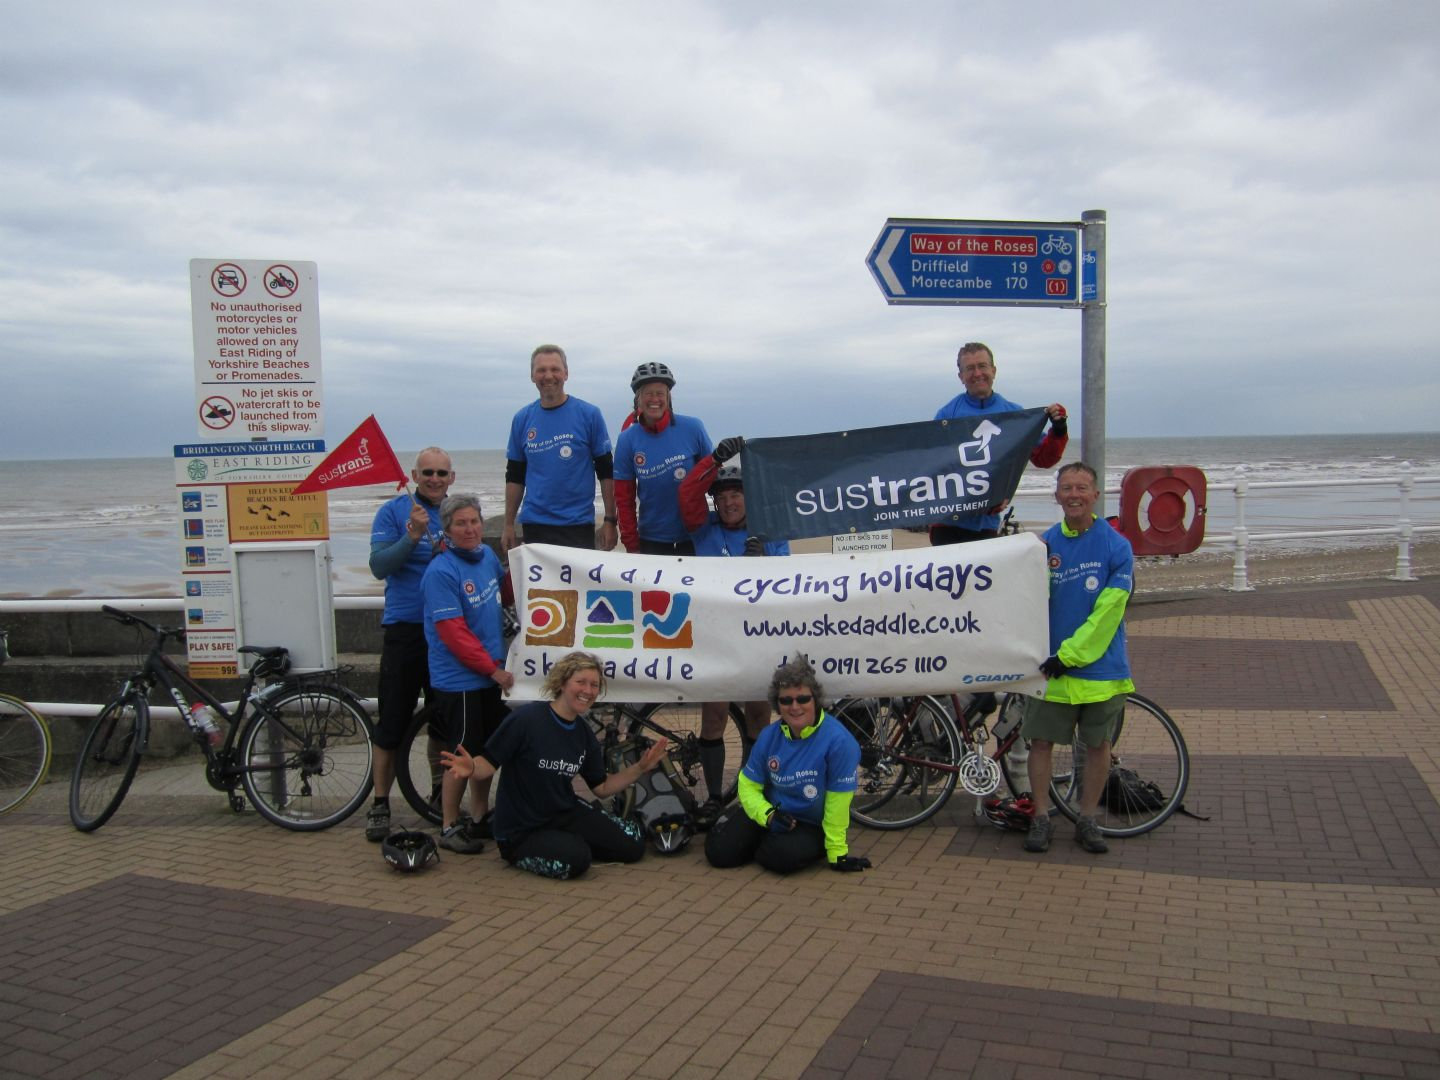 Way of the Roses Cycling 22.jpg - UK - Way of the Roses - Supported Leisure Cycling Holiday - Leisure Cycling